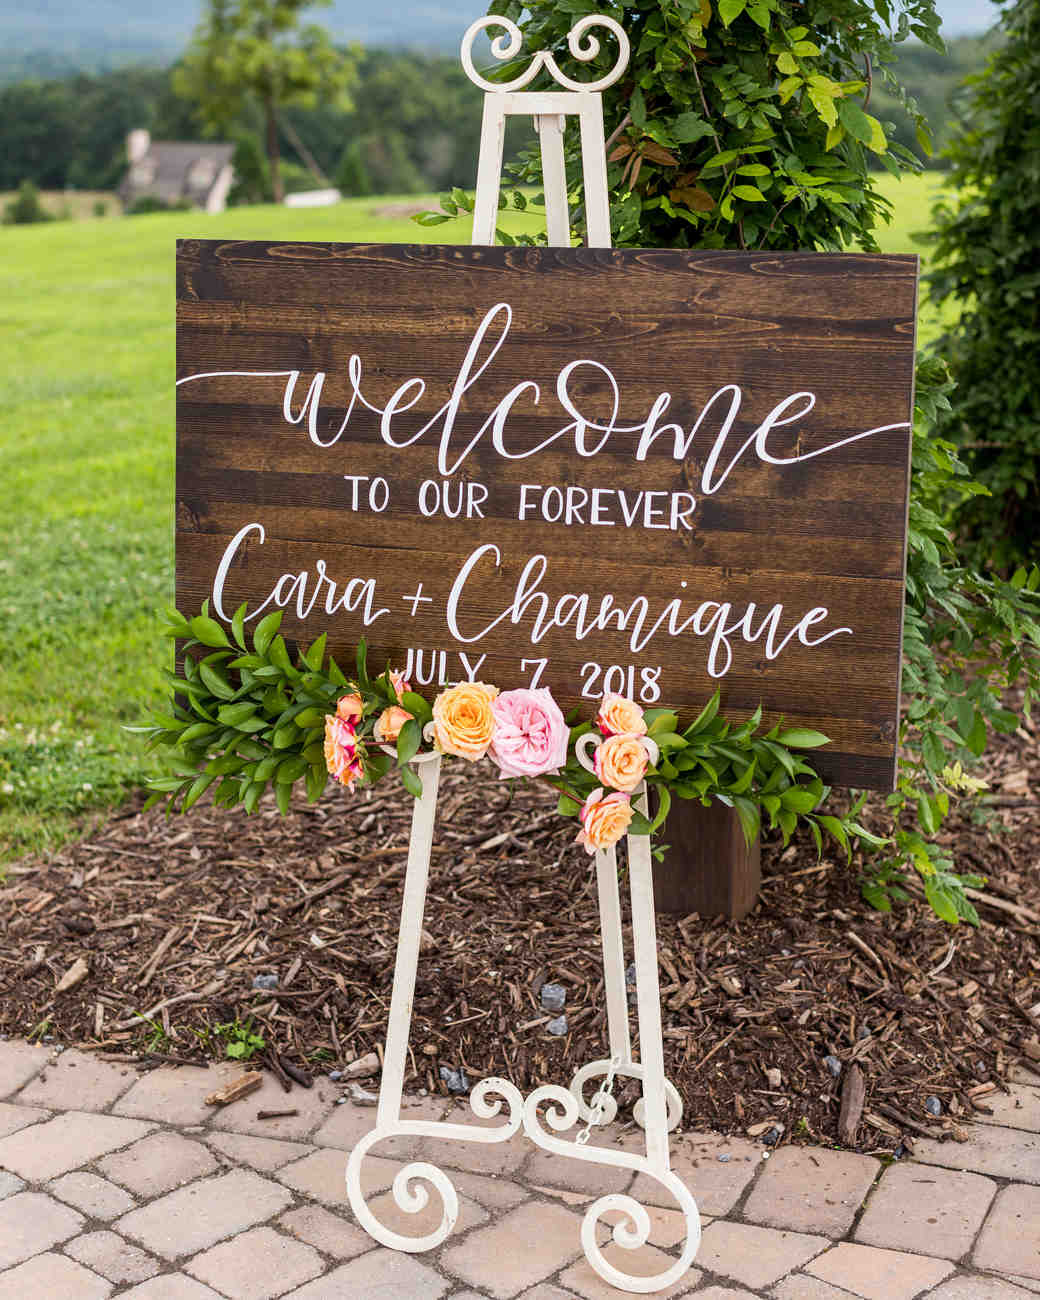 cara chamique wedding welcome sign